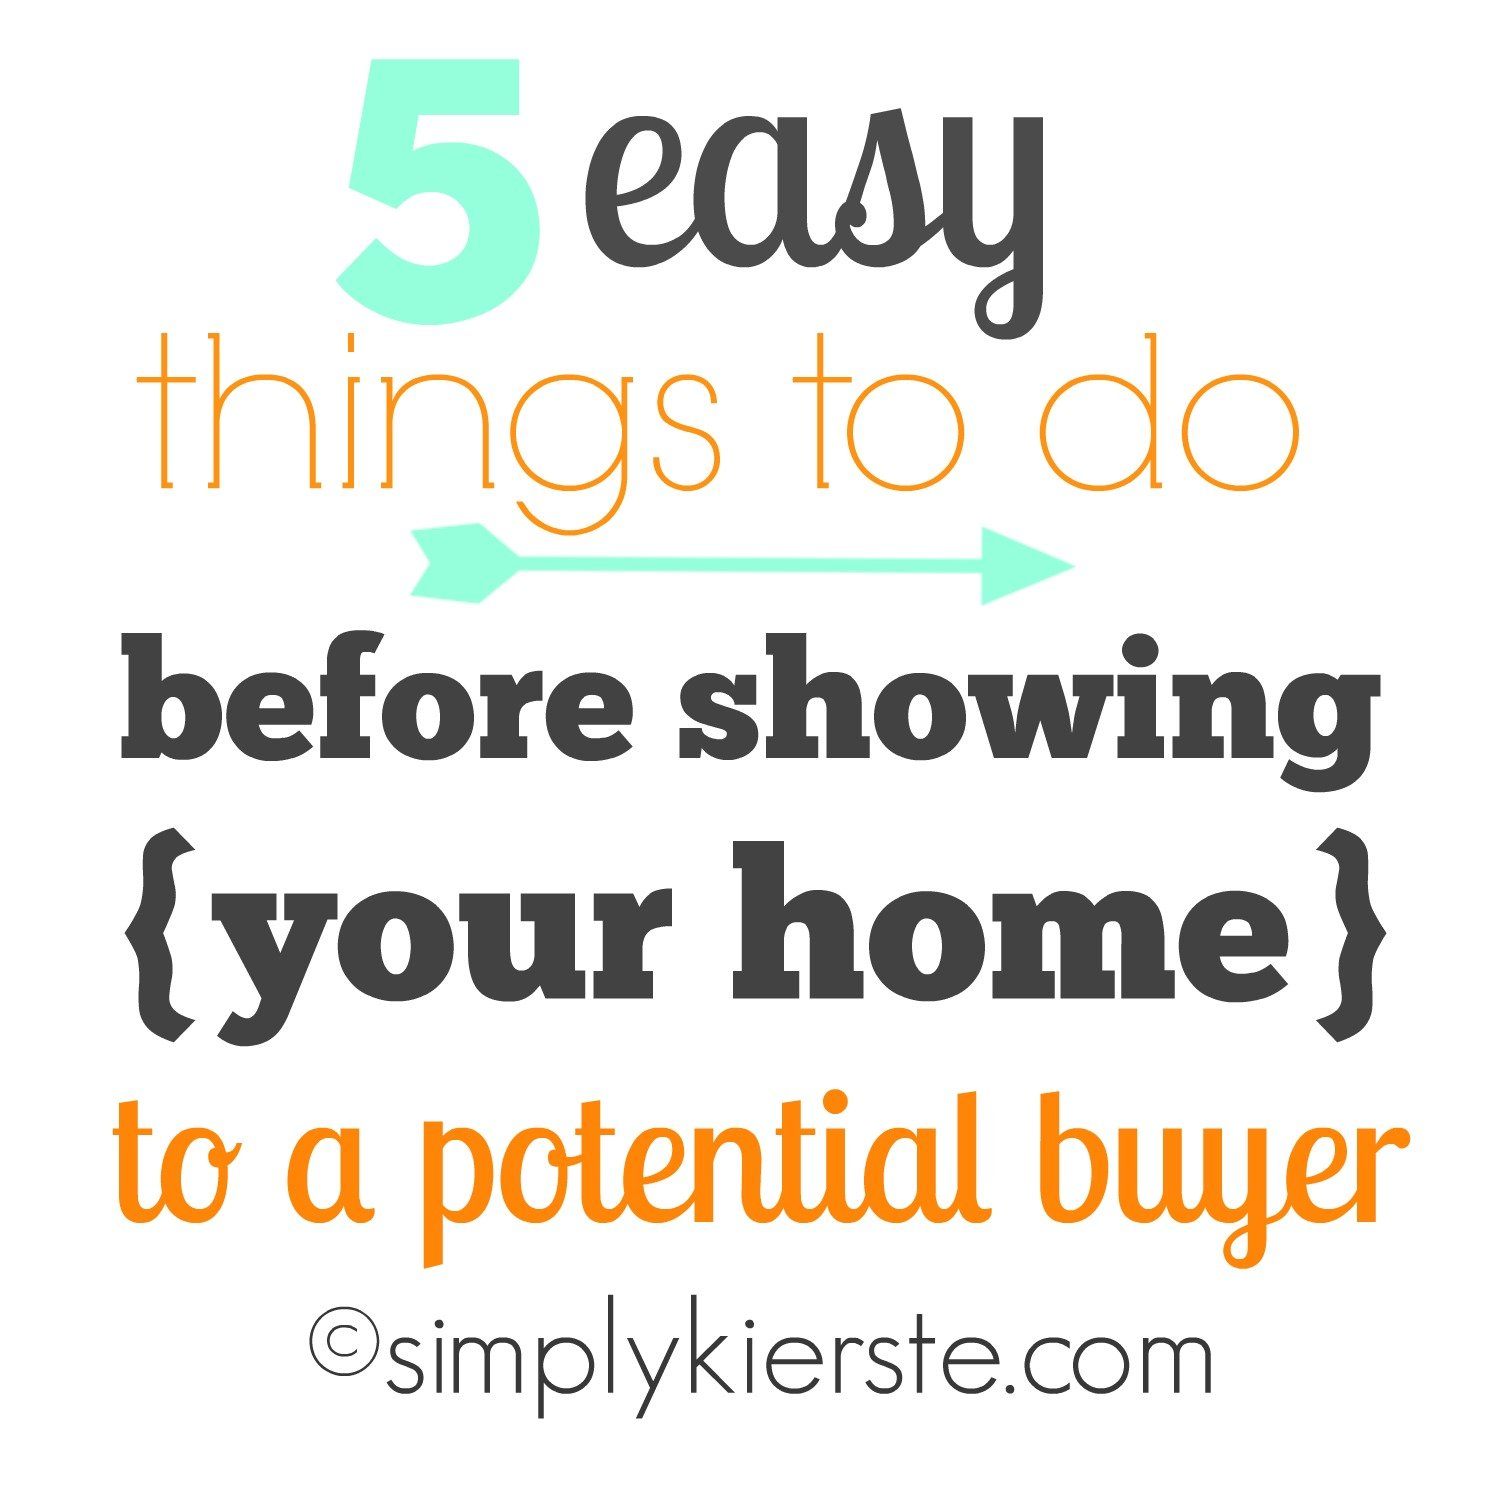 5 Easy Things to Do Before Showing Your Home to a Potential Buyer